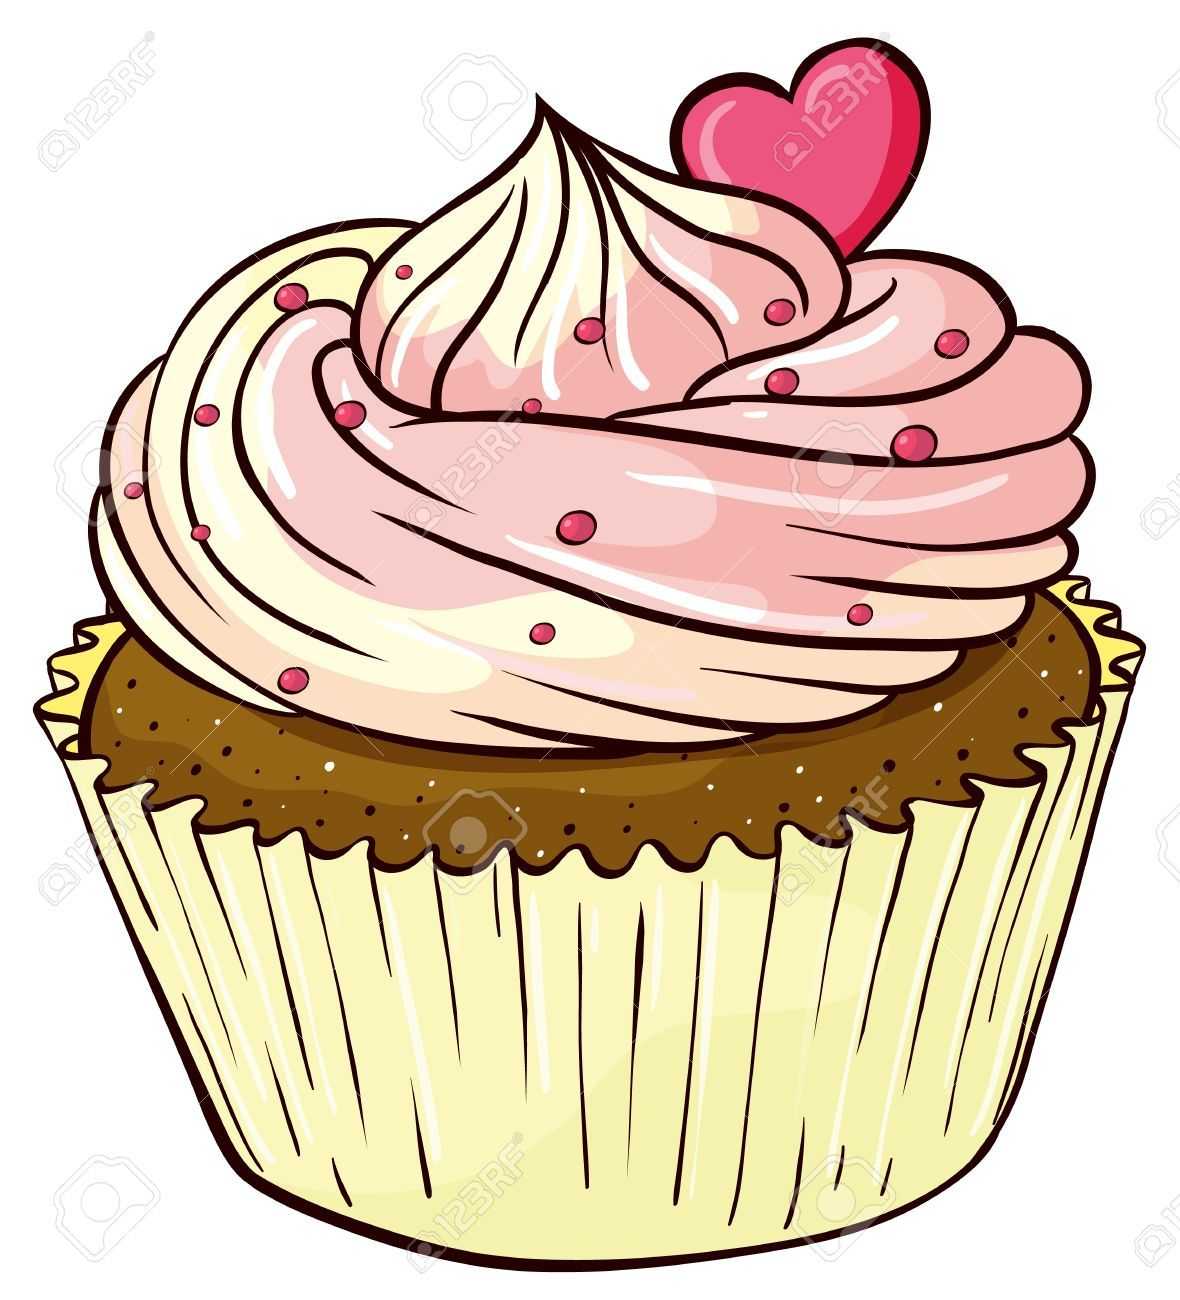 Cupcake Clipart Stock Photos Images, Royalty Free Cupcake.